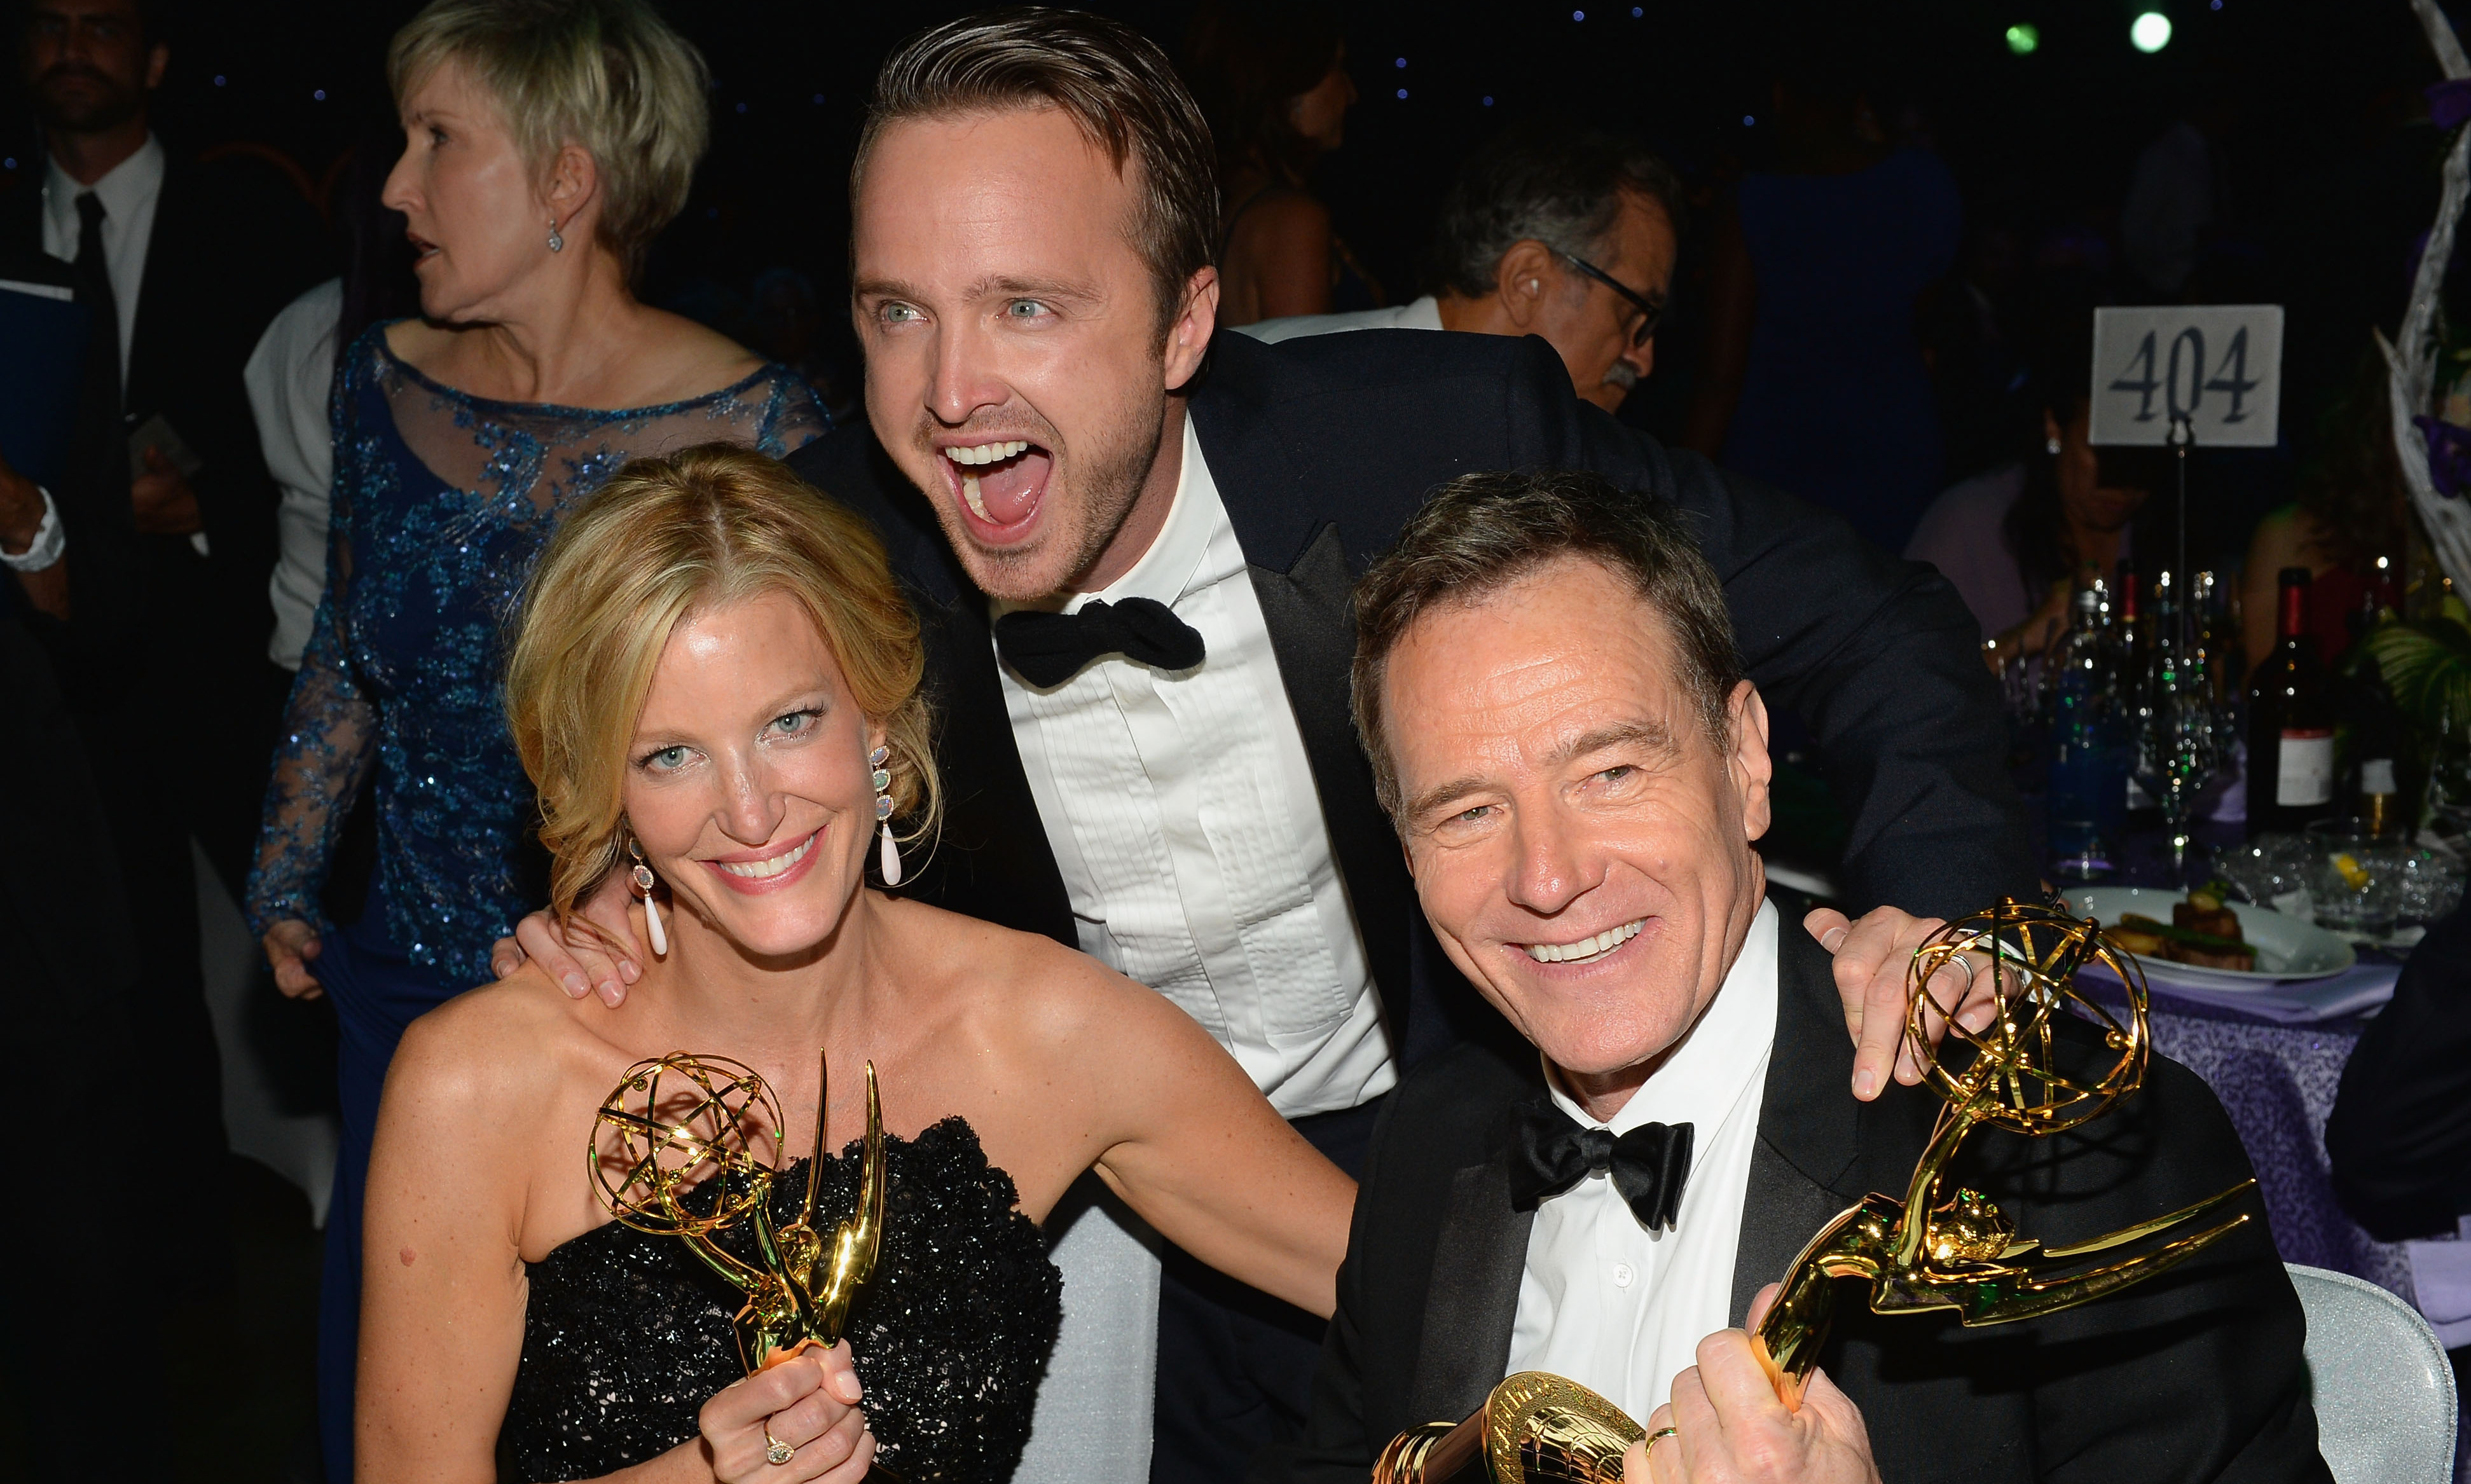 Breaking Bad stars Anna Gunn, Aaron Paul, and Bryan Cranston celebrate the show's win at the Governors Ball during the 65th Annual Primetime Emmy Awards.